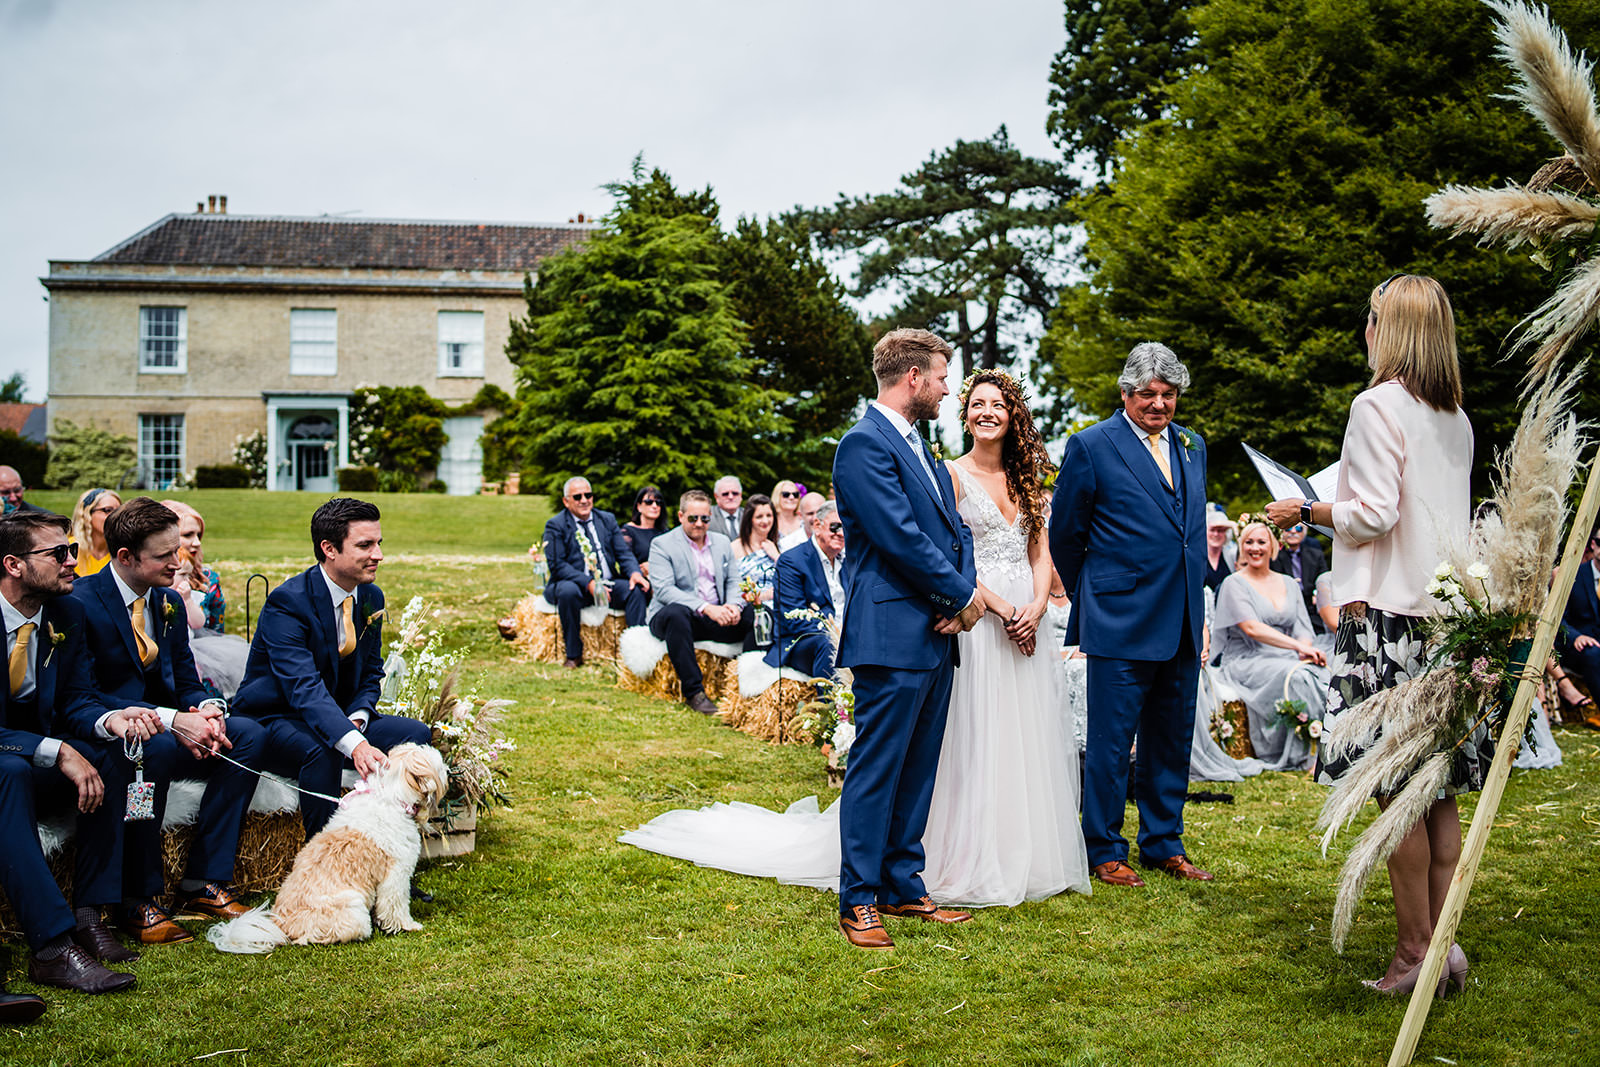 Getting Married Outdoors At West Lexham